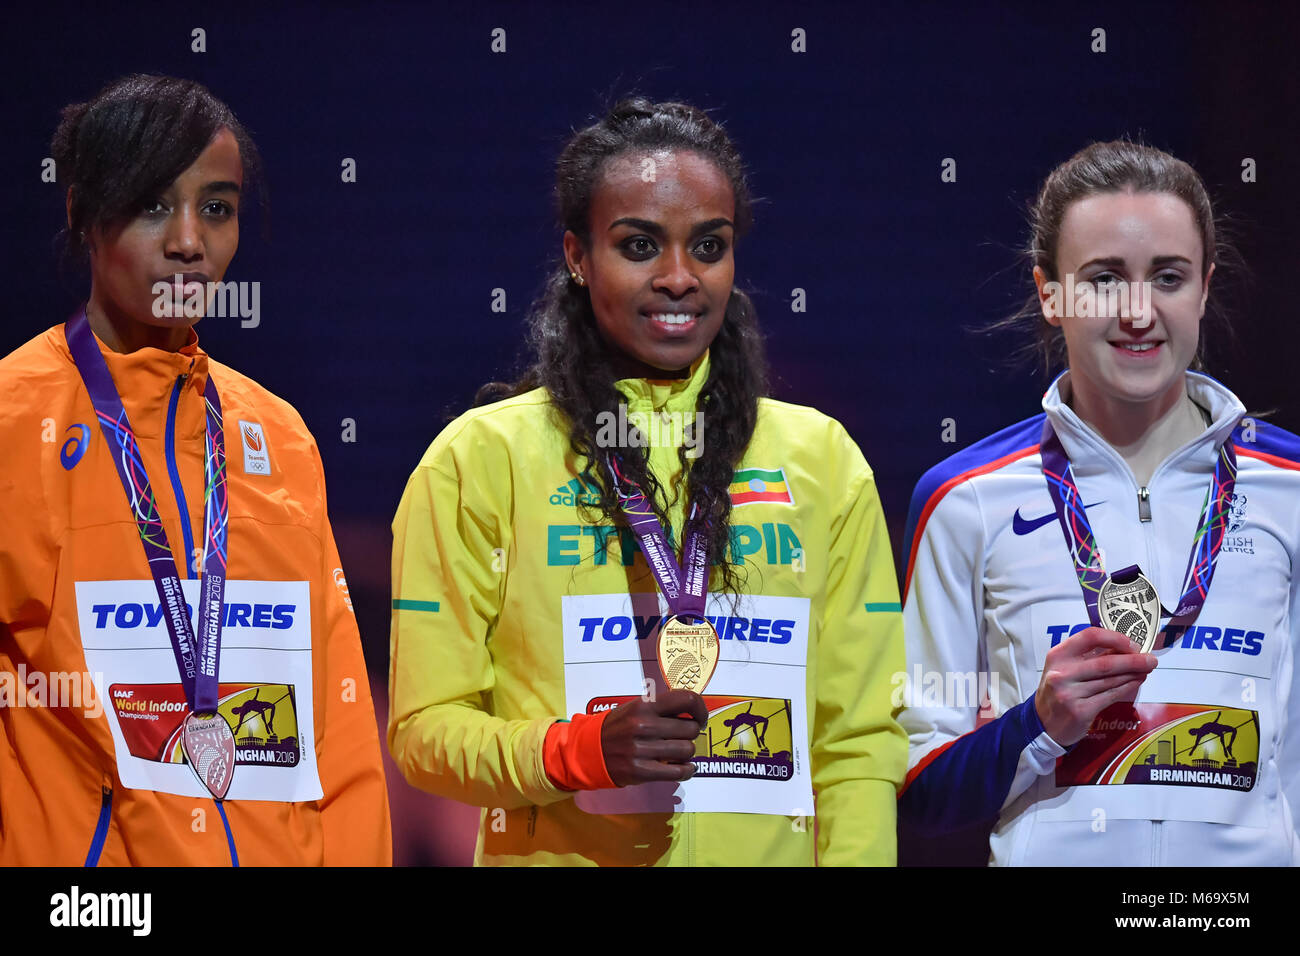 Birmingham, UK. 1st March, 2018. during IAAF World Indoor Championships at Arena Birmingham on Thursday, 01 March - Stock Image